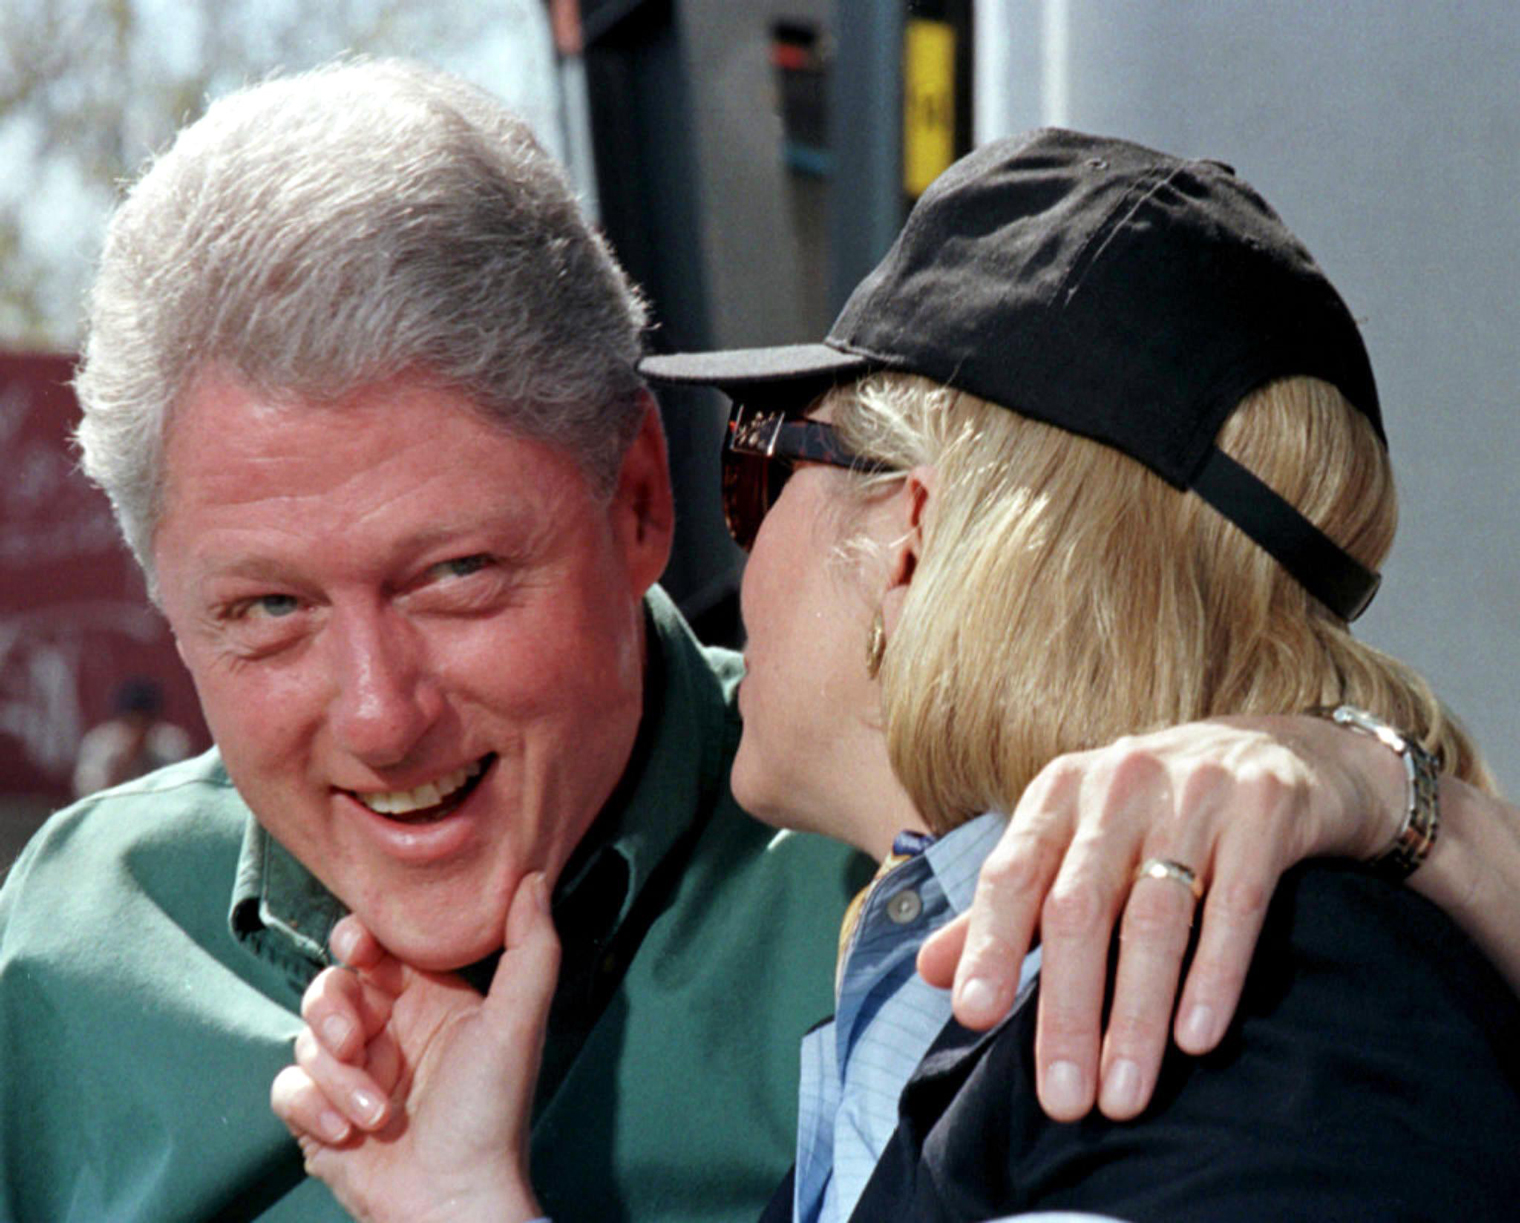 Former President Bill Clinton with likely presidential candidate and wife Hilary